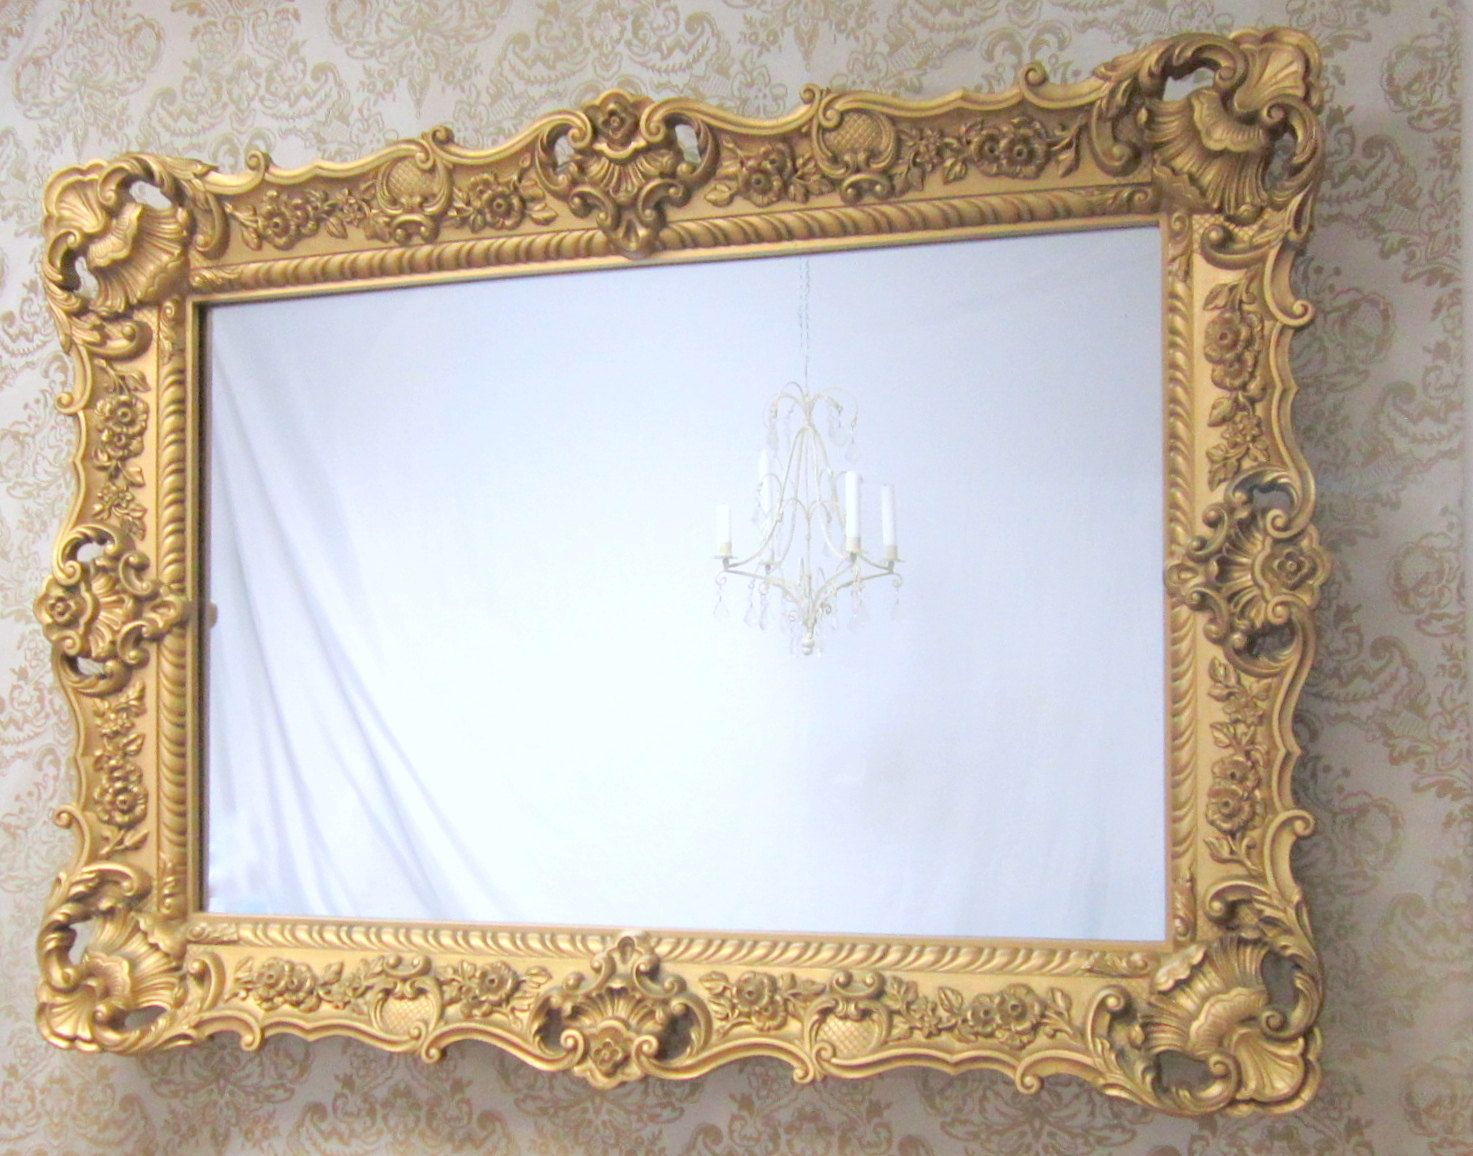 Large ornate mirror frames